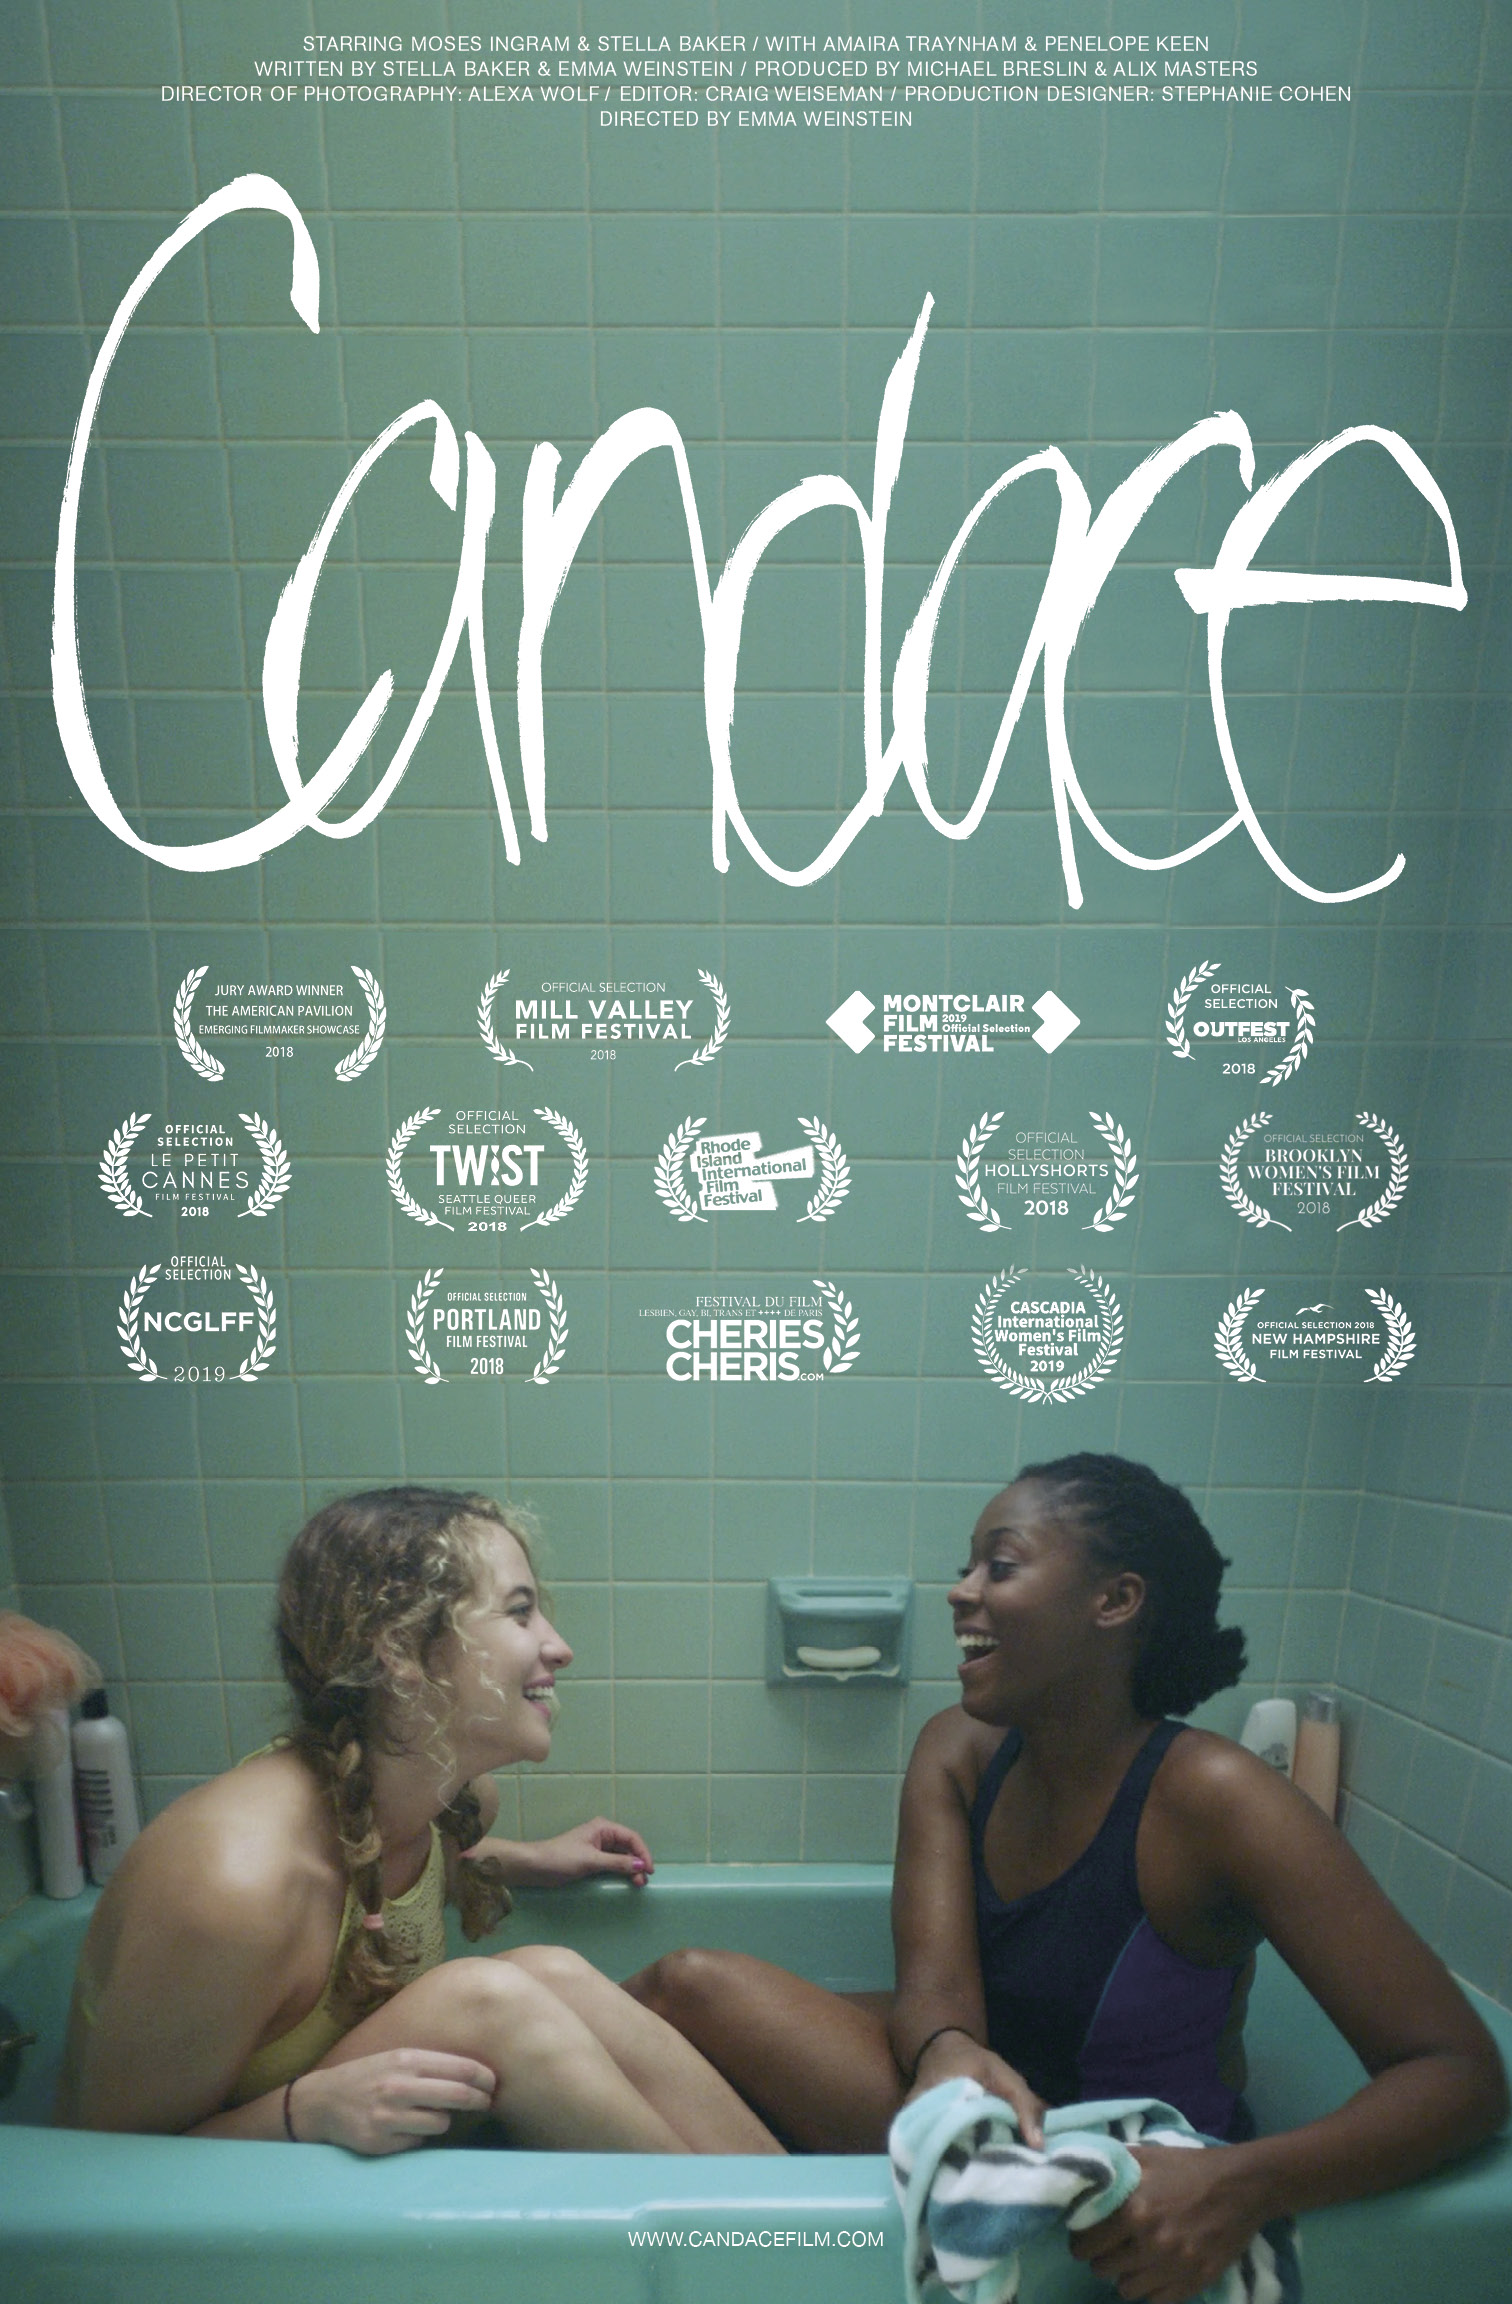 Candace - A 9-minute film by Em Weinstein and Stella Baker filmed in August of 2017 and completed December 2017. Candace has played at film festivals all over the world. Visit www.candacefilm.com for a press kit and more information.